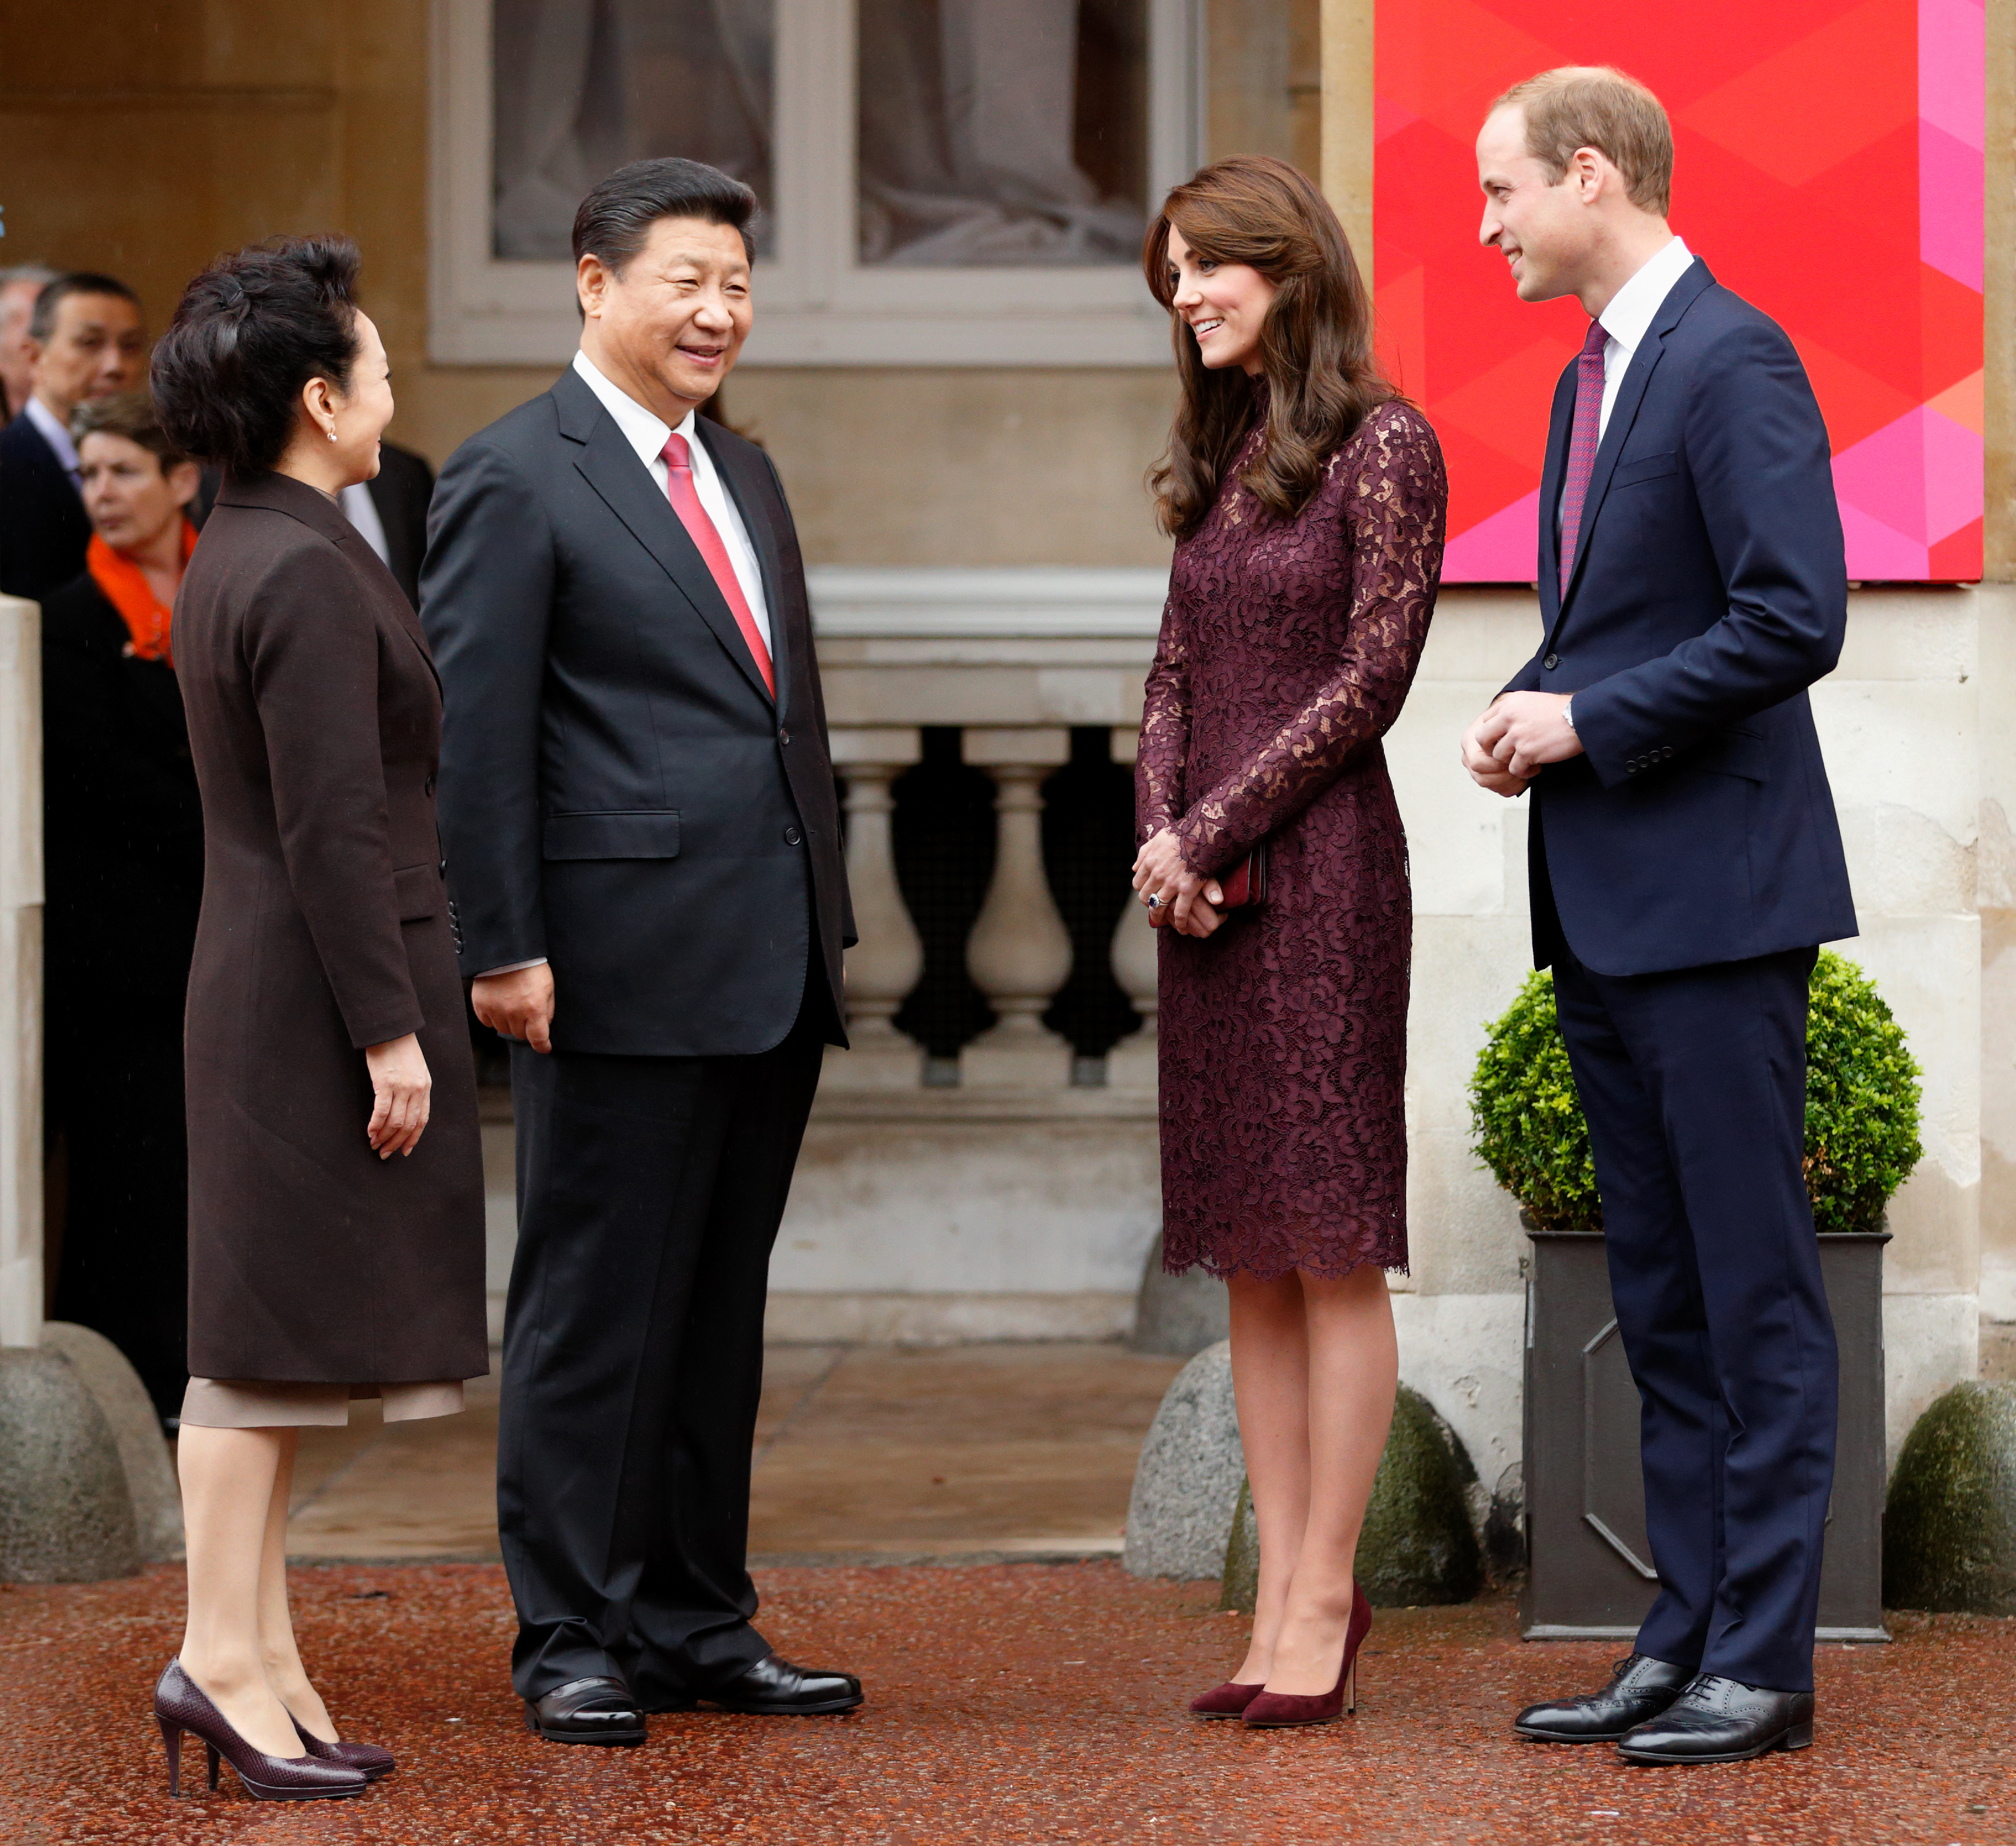 LONDON, UNITED KINGDOM - OCTOBER 21: (EMBARGOED FOR PUBLICATION IN UK NEWSPAPERS UNTIL 48 HOURS AFTER CREATE DATE AND TIME) The President of the Peoples Republic of China, Xi Jinping, his wife Peng Liyuan, Catherine, Duchess of Cambridge and Prince William, Duke of Cambridge attend 'Creative Collaborations: UK & China' at Lancaster House on October 21, 2015 in London, England. The President of the Peoples Republic of China, Mr Xi Jinping and his wife, Madame Peng Liyuan, are paying a State Visit to the United Kingdom as guests of The Queen. They will stay at Buckingham Palace and undertake engagements in London and Manchester. The last state visit paid by a Chinese President to the UK was Hu Jintao in 2005. (Photo by Max Mumby/Indigo/Getty Images)